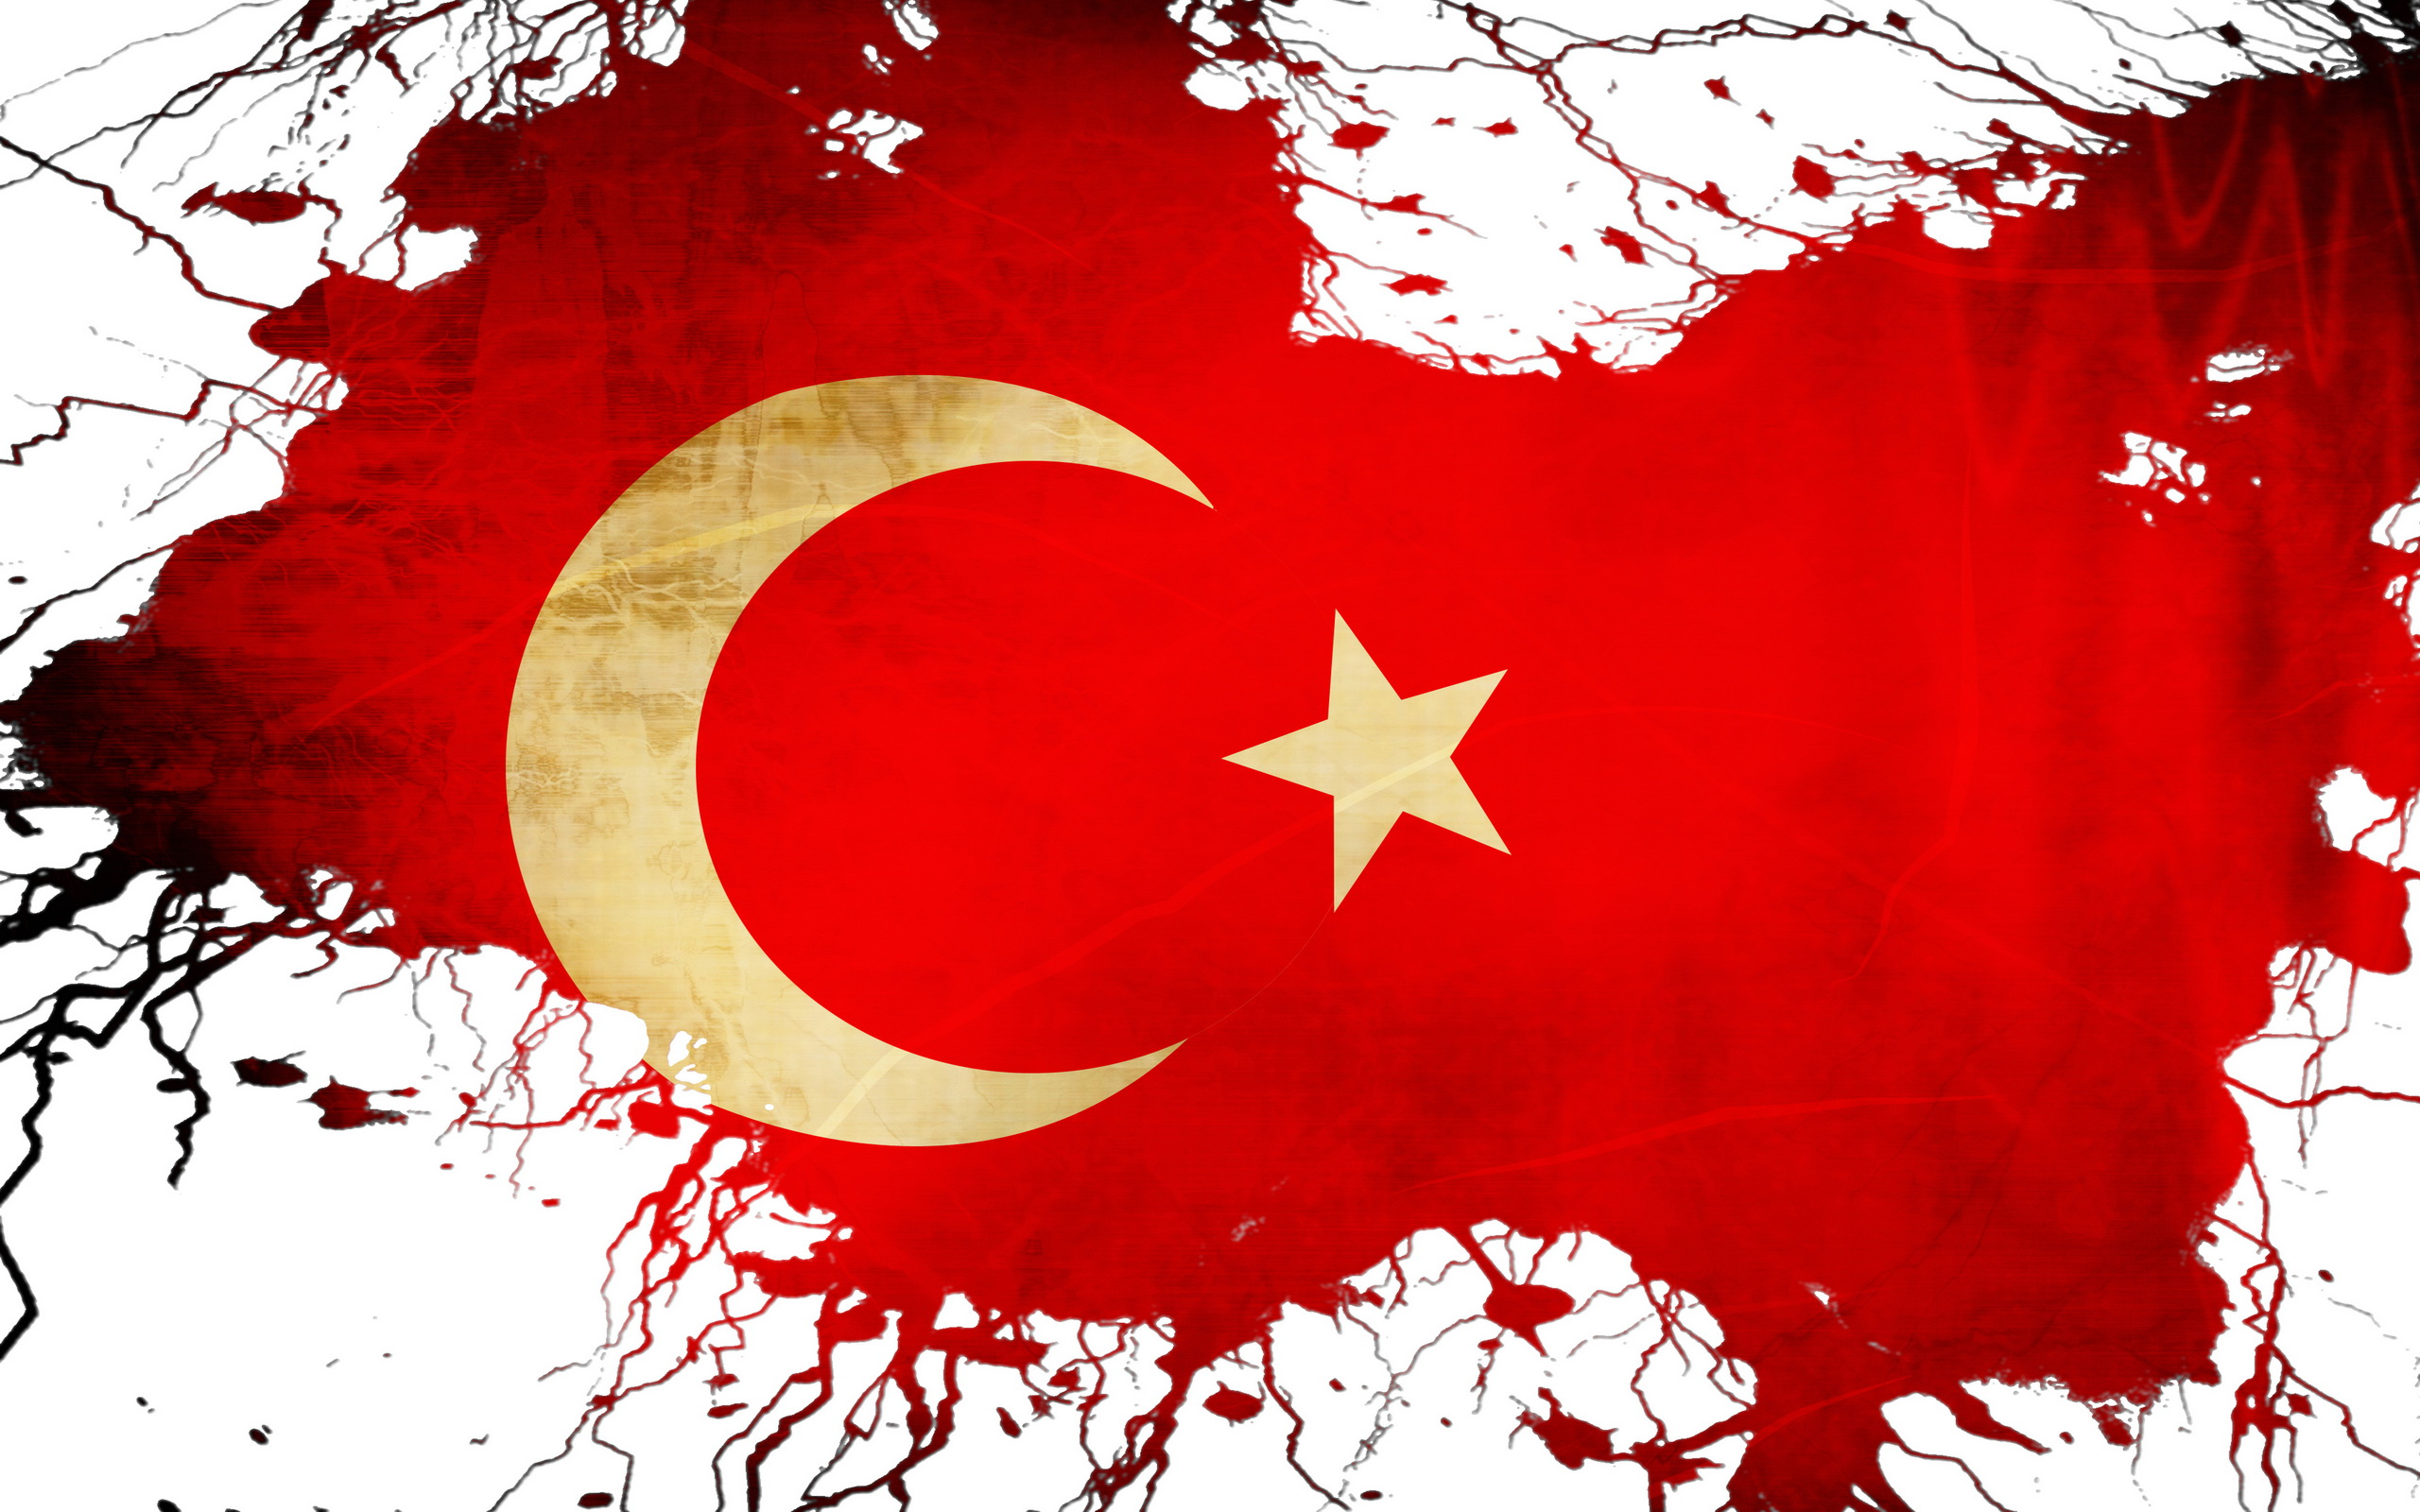 Flag Of Turkey Full HD Wallpaper And Background Image